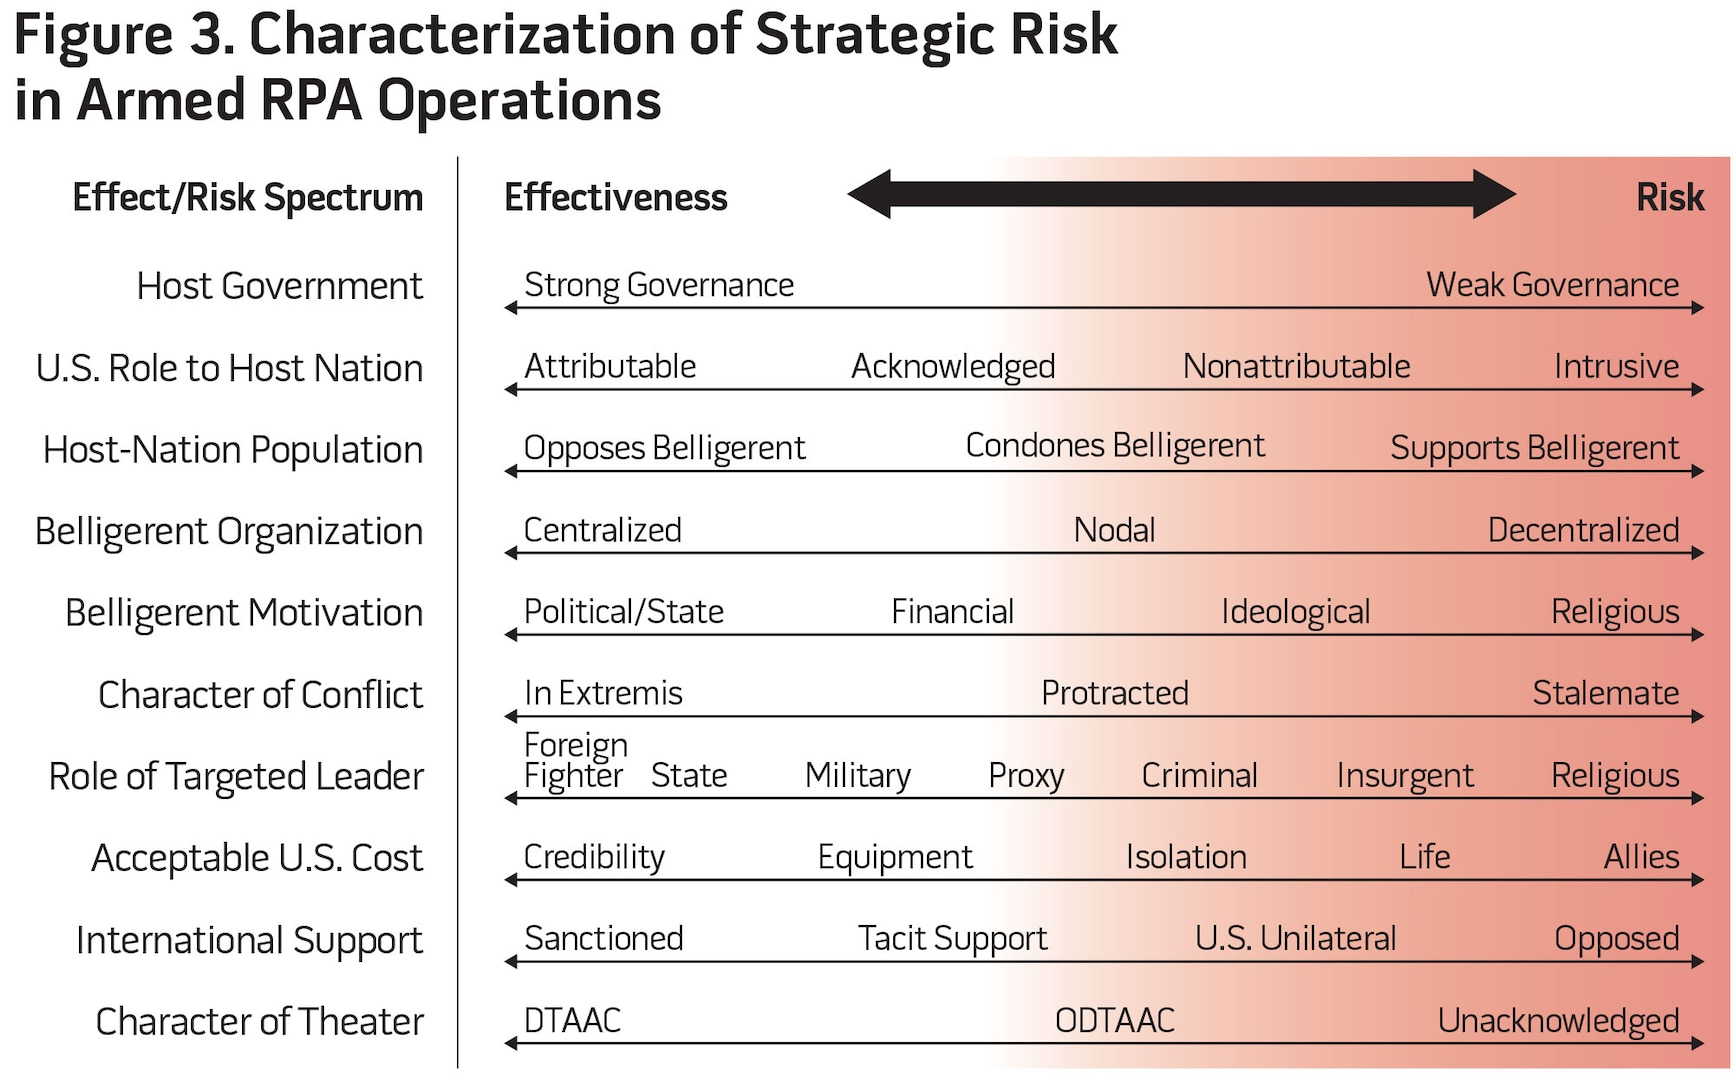 Figure 3. Characterization of Strategic Risk in Armed RPA Operations